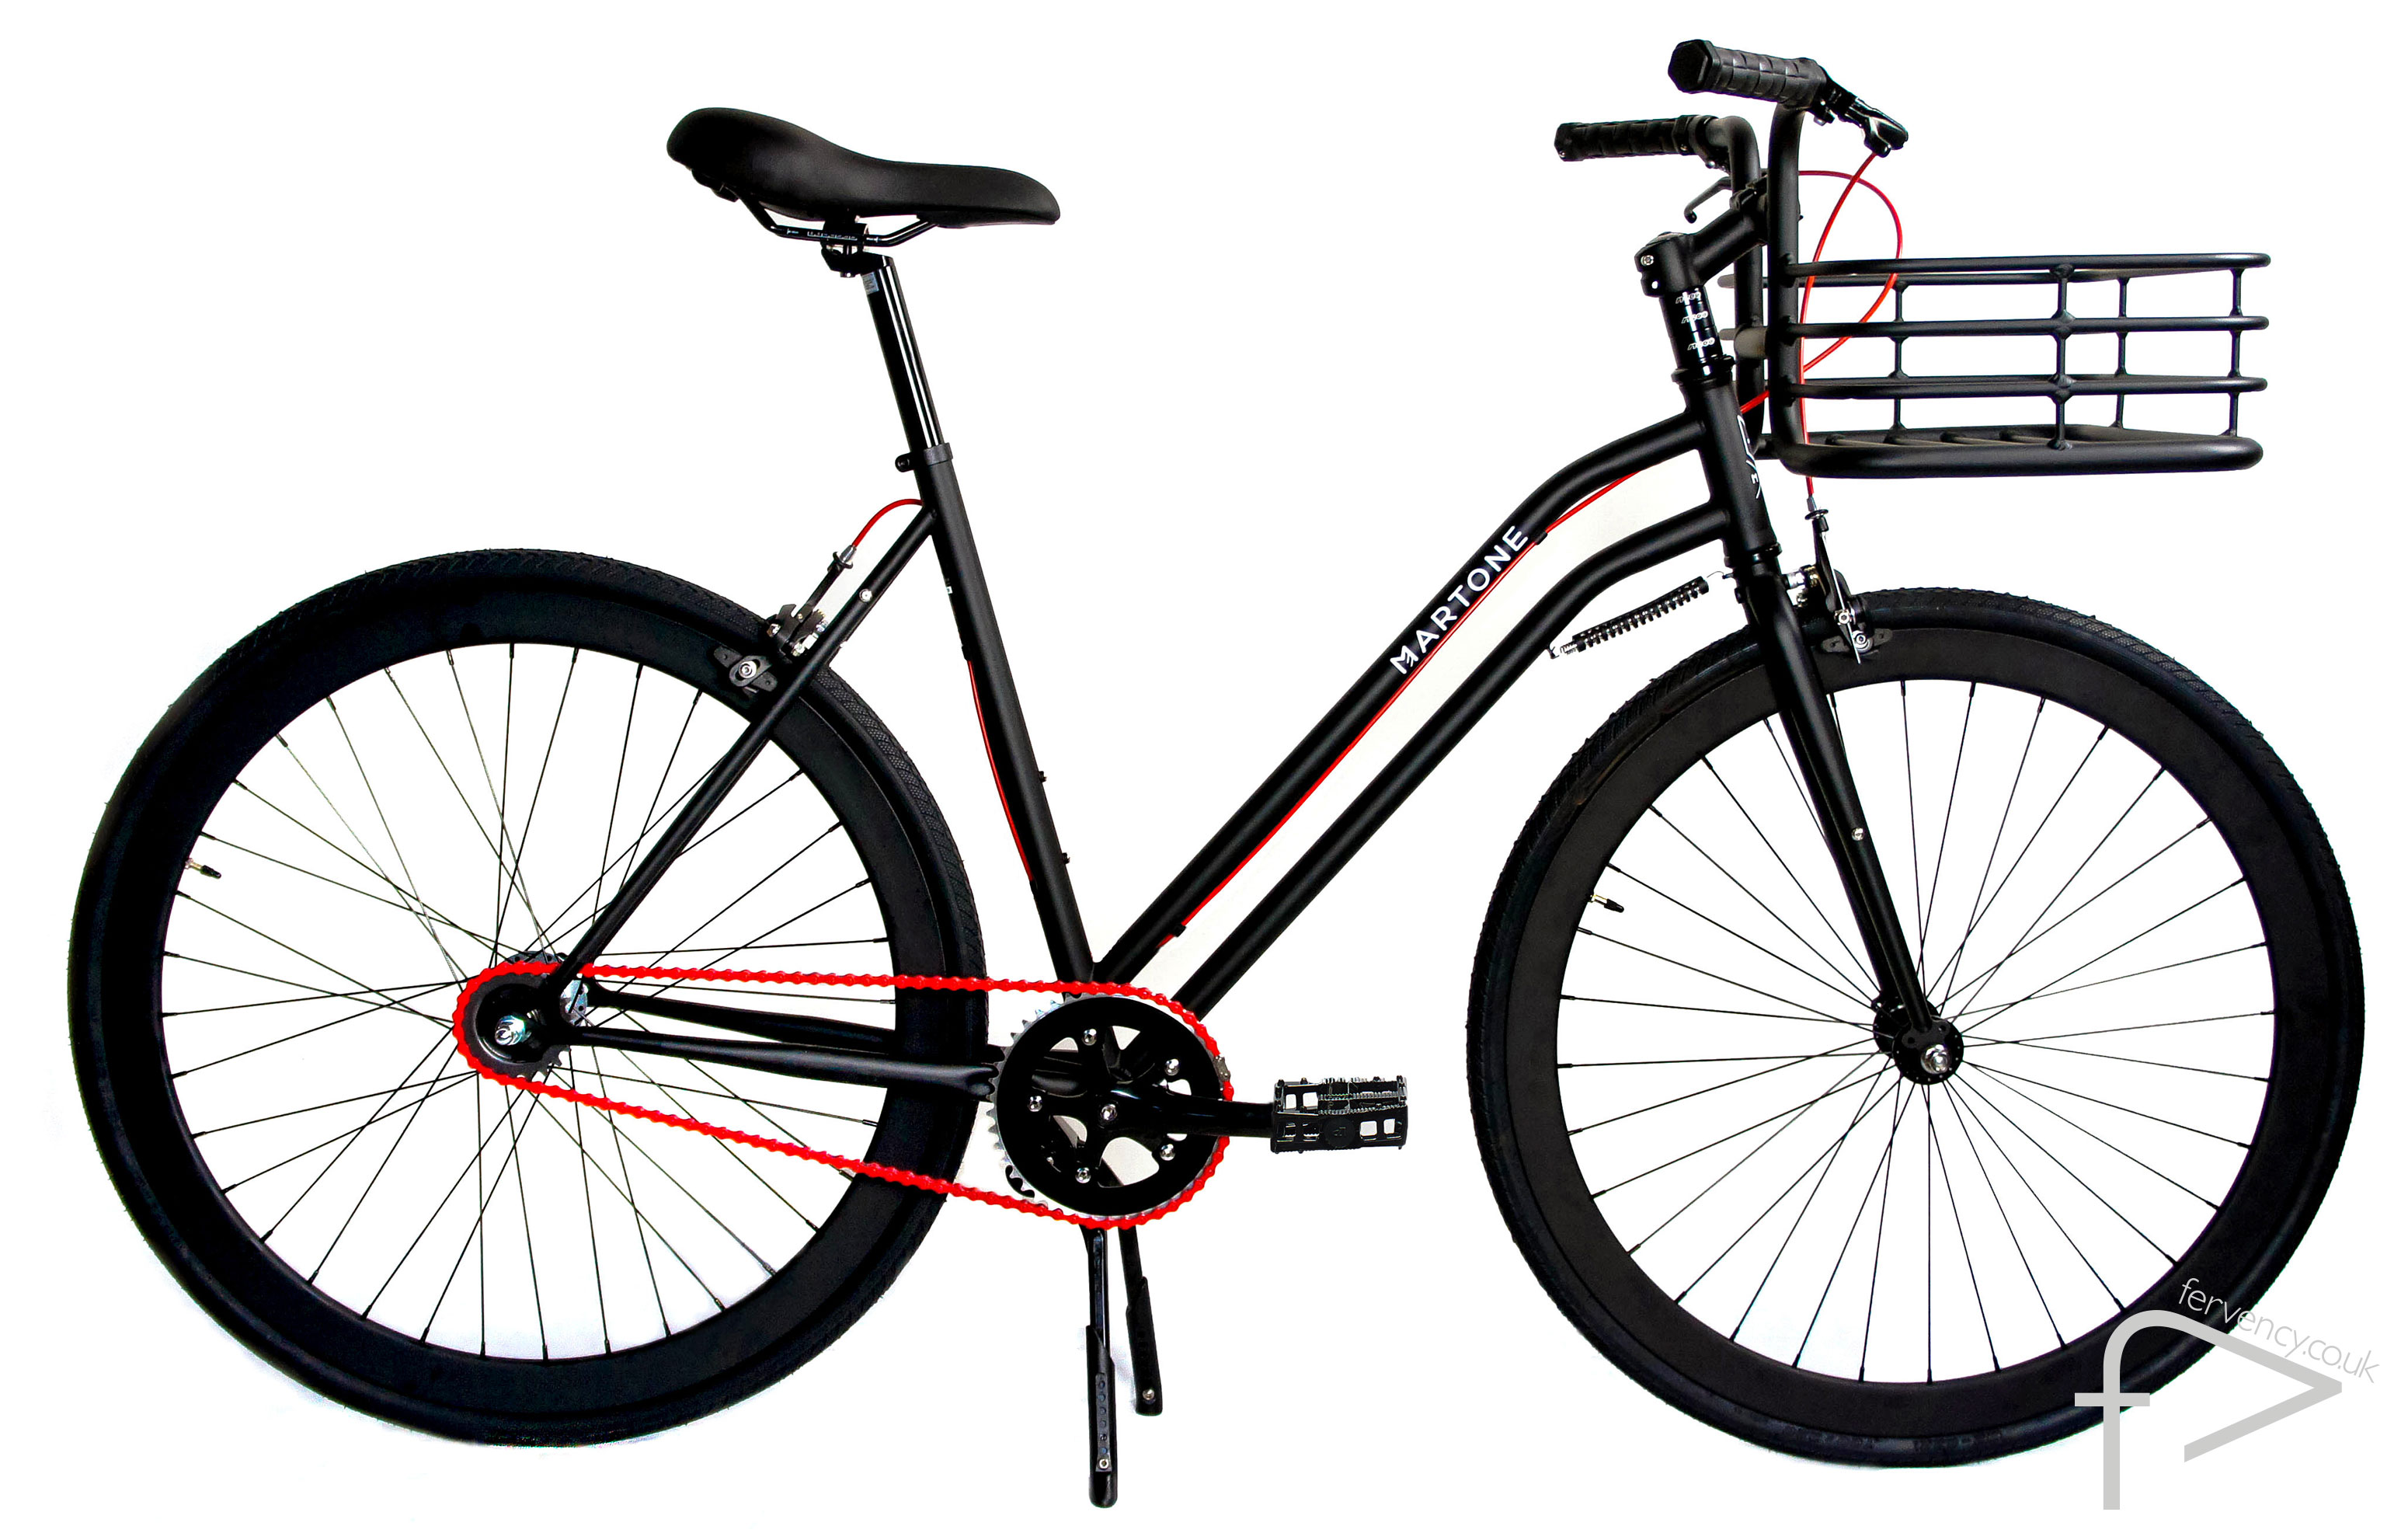 Mercer Black Womens Bike with Basket